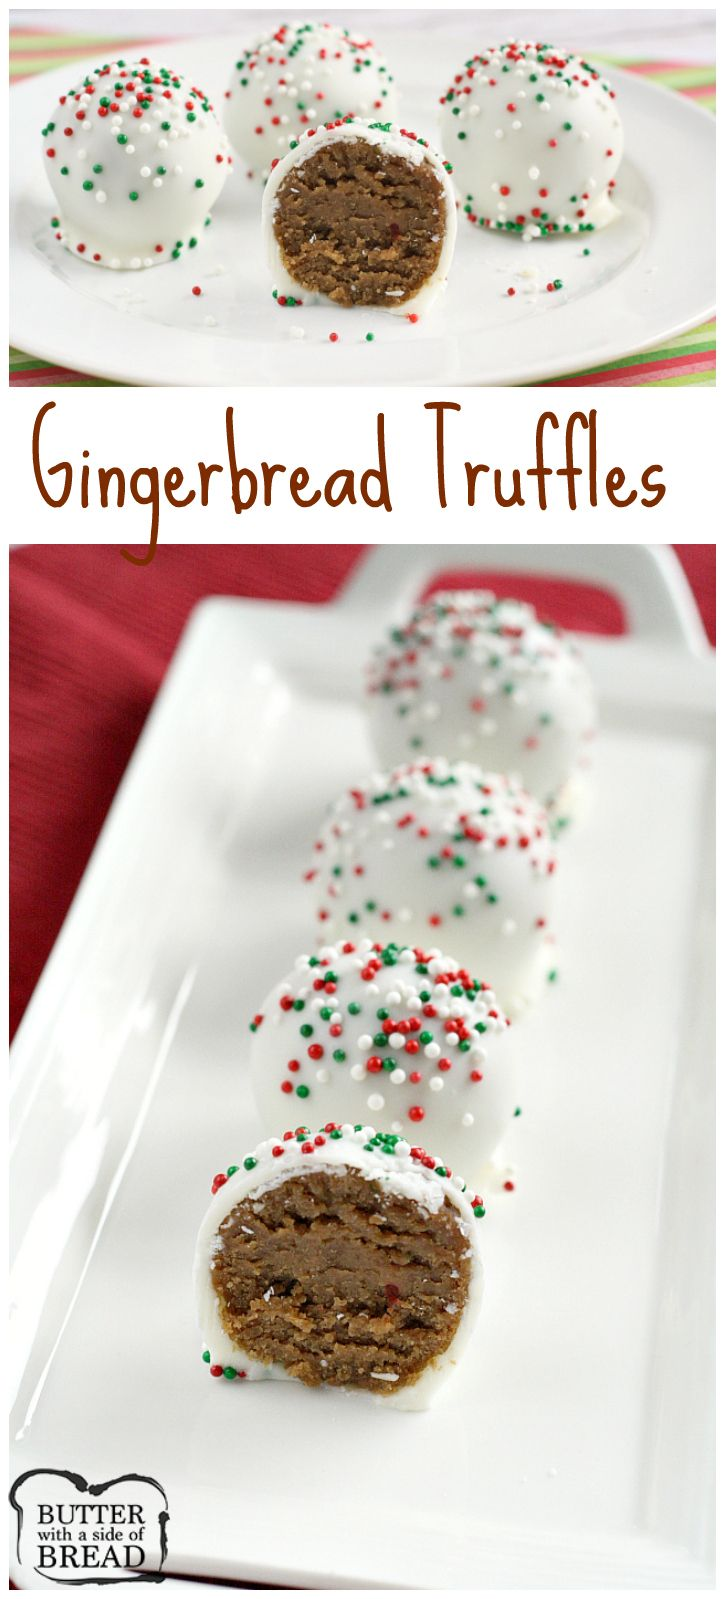 74 best Simple Holiday Gifts images on Pinterest | Holiday gifts ...